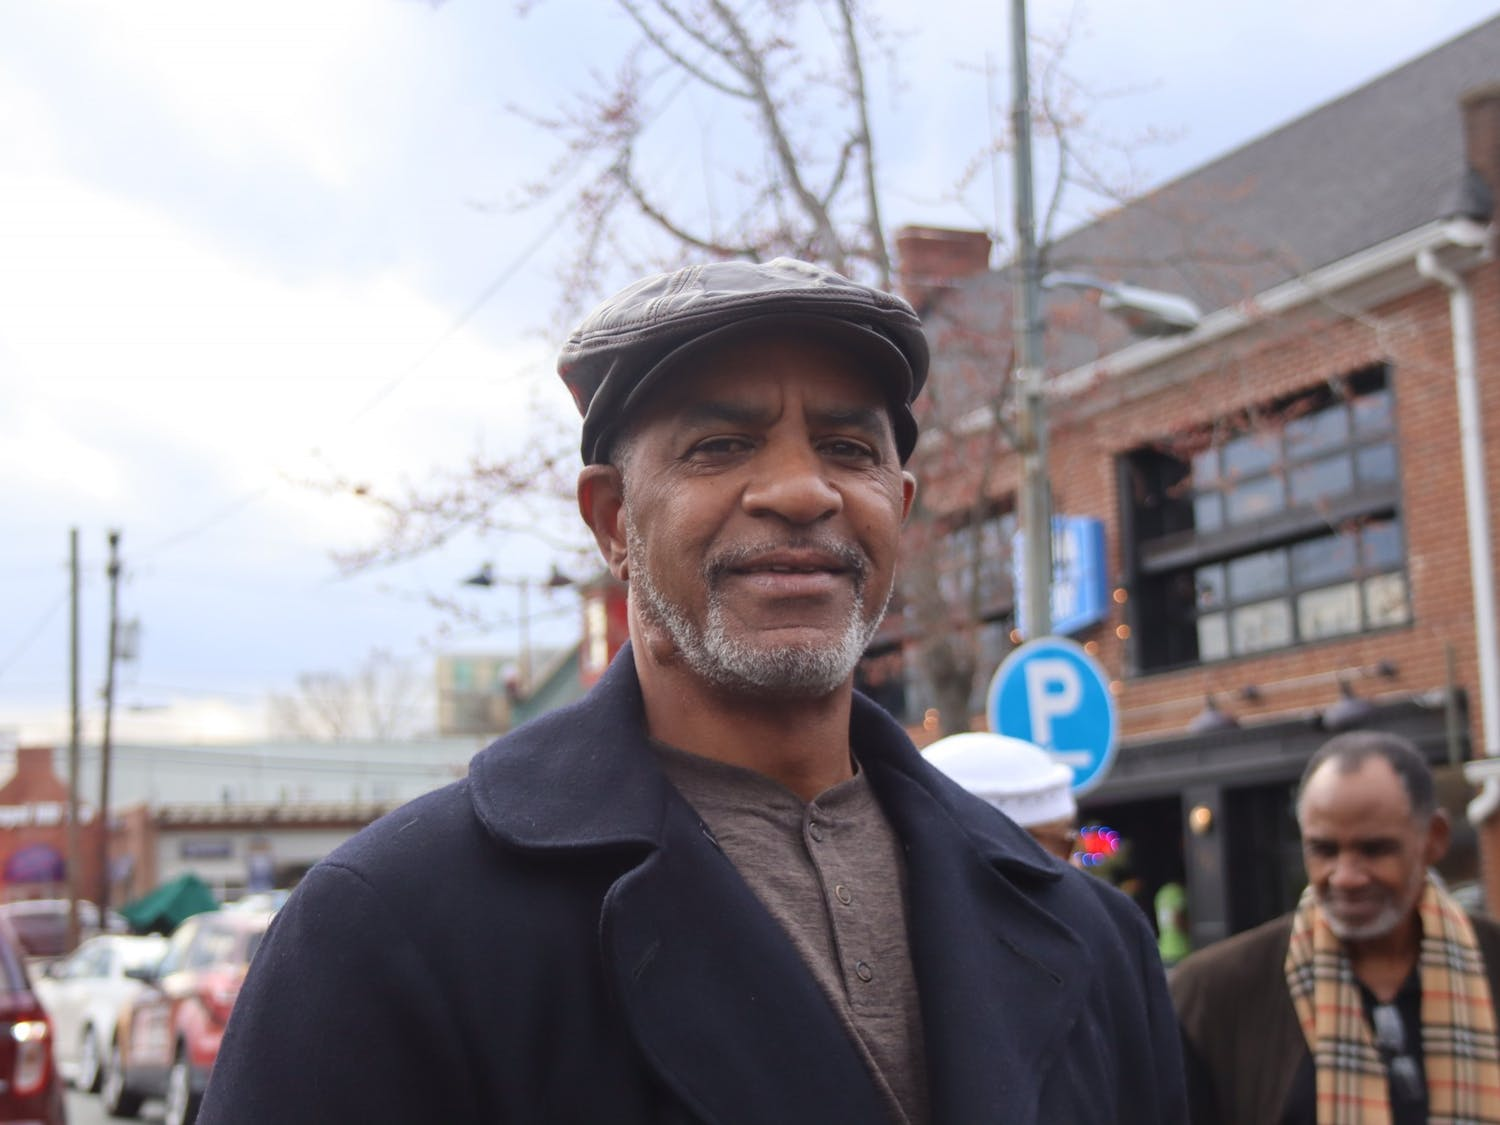 Michael Foushee is a Chapel Hill native who was 6 years old when the Chapel Hill Nine demonstrations began. He attended the group's marker dedication event on Friday, Feb. 28, 2020.